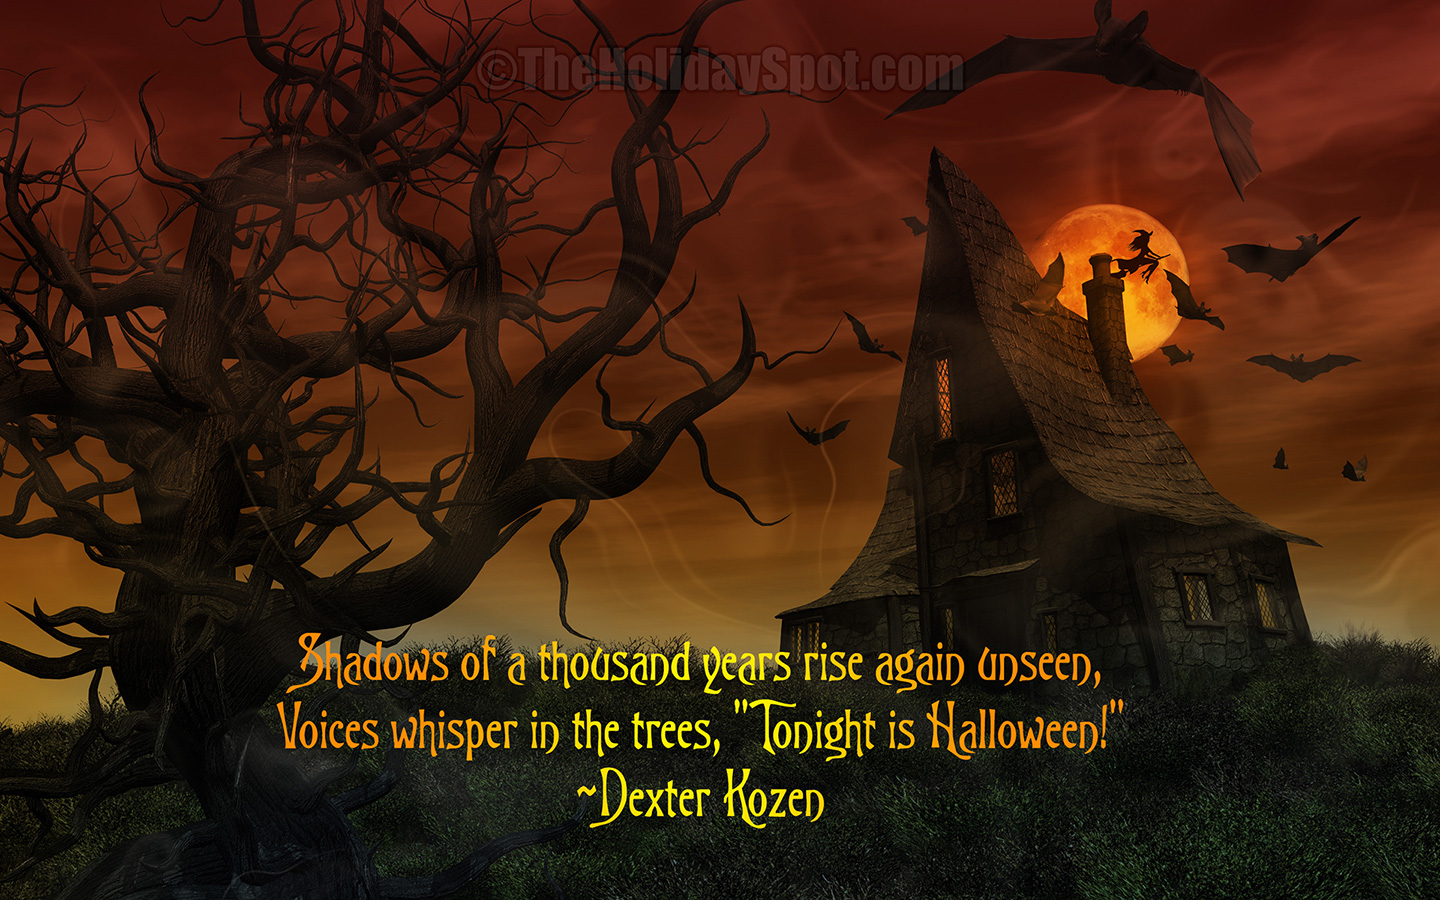 Good Wallpaper Halloween Screensaver - halloween-wallpaper-1440x900-02  Snapshot_152118.jpg